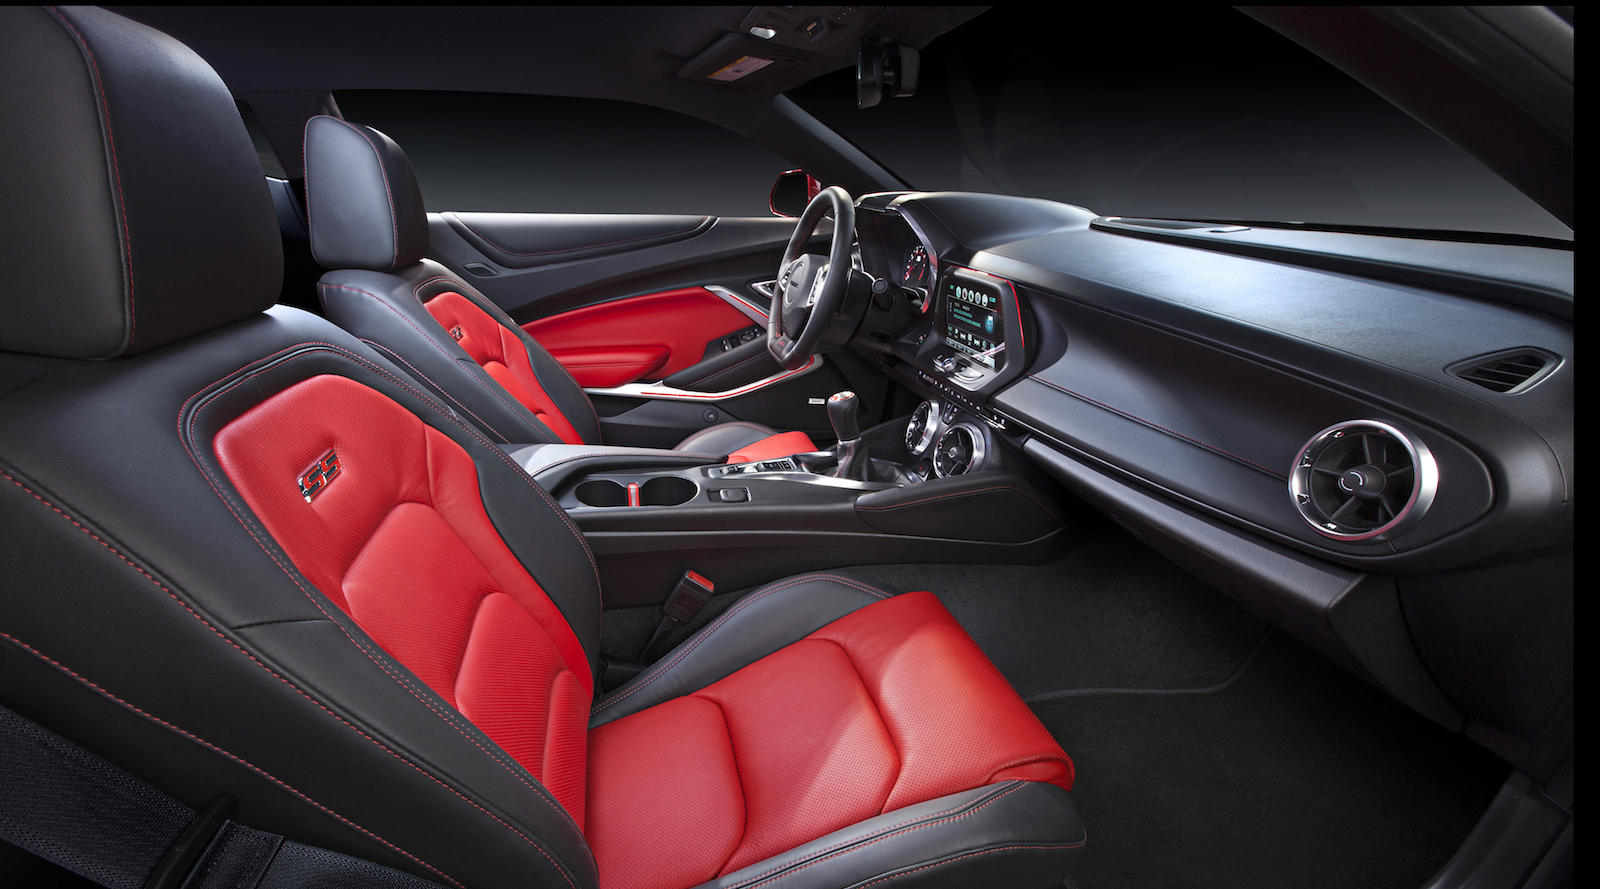 The inside of a 2016 Chevy Camaro with black and red interior.